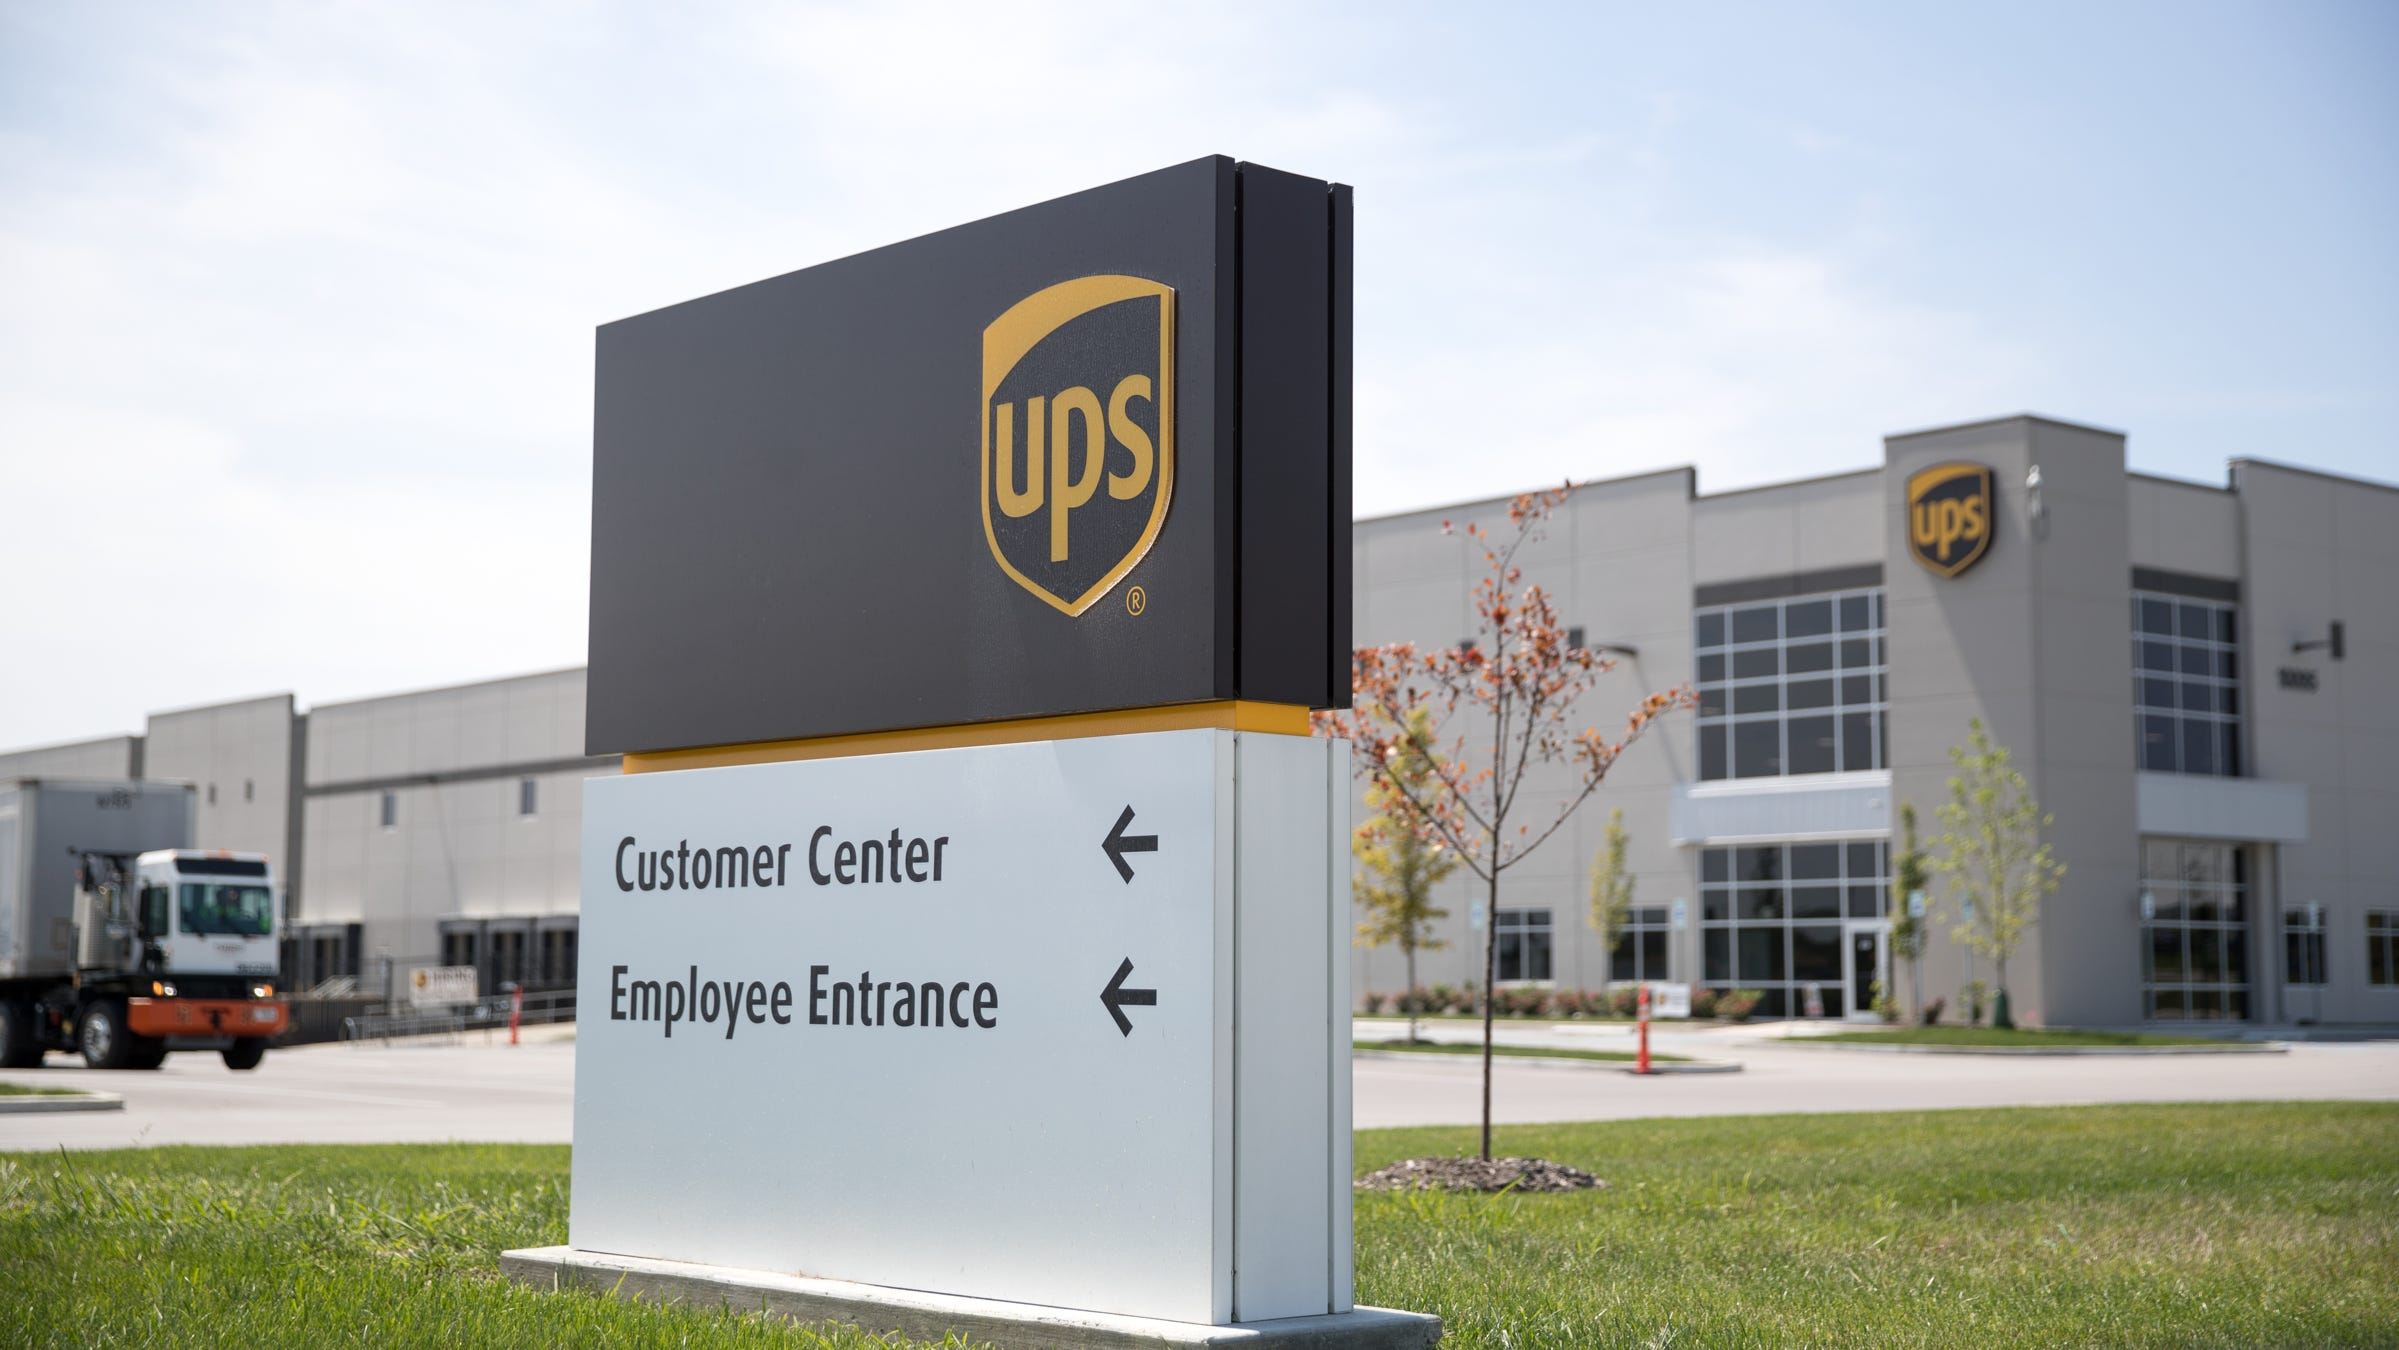 The UPS hub in Plainfield, the site of a recent walkout by employees over comments made by a manager, who has since been fired. Thursday, Aug. 9, 2018.